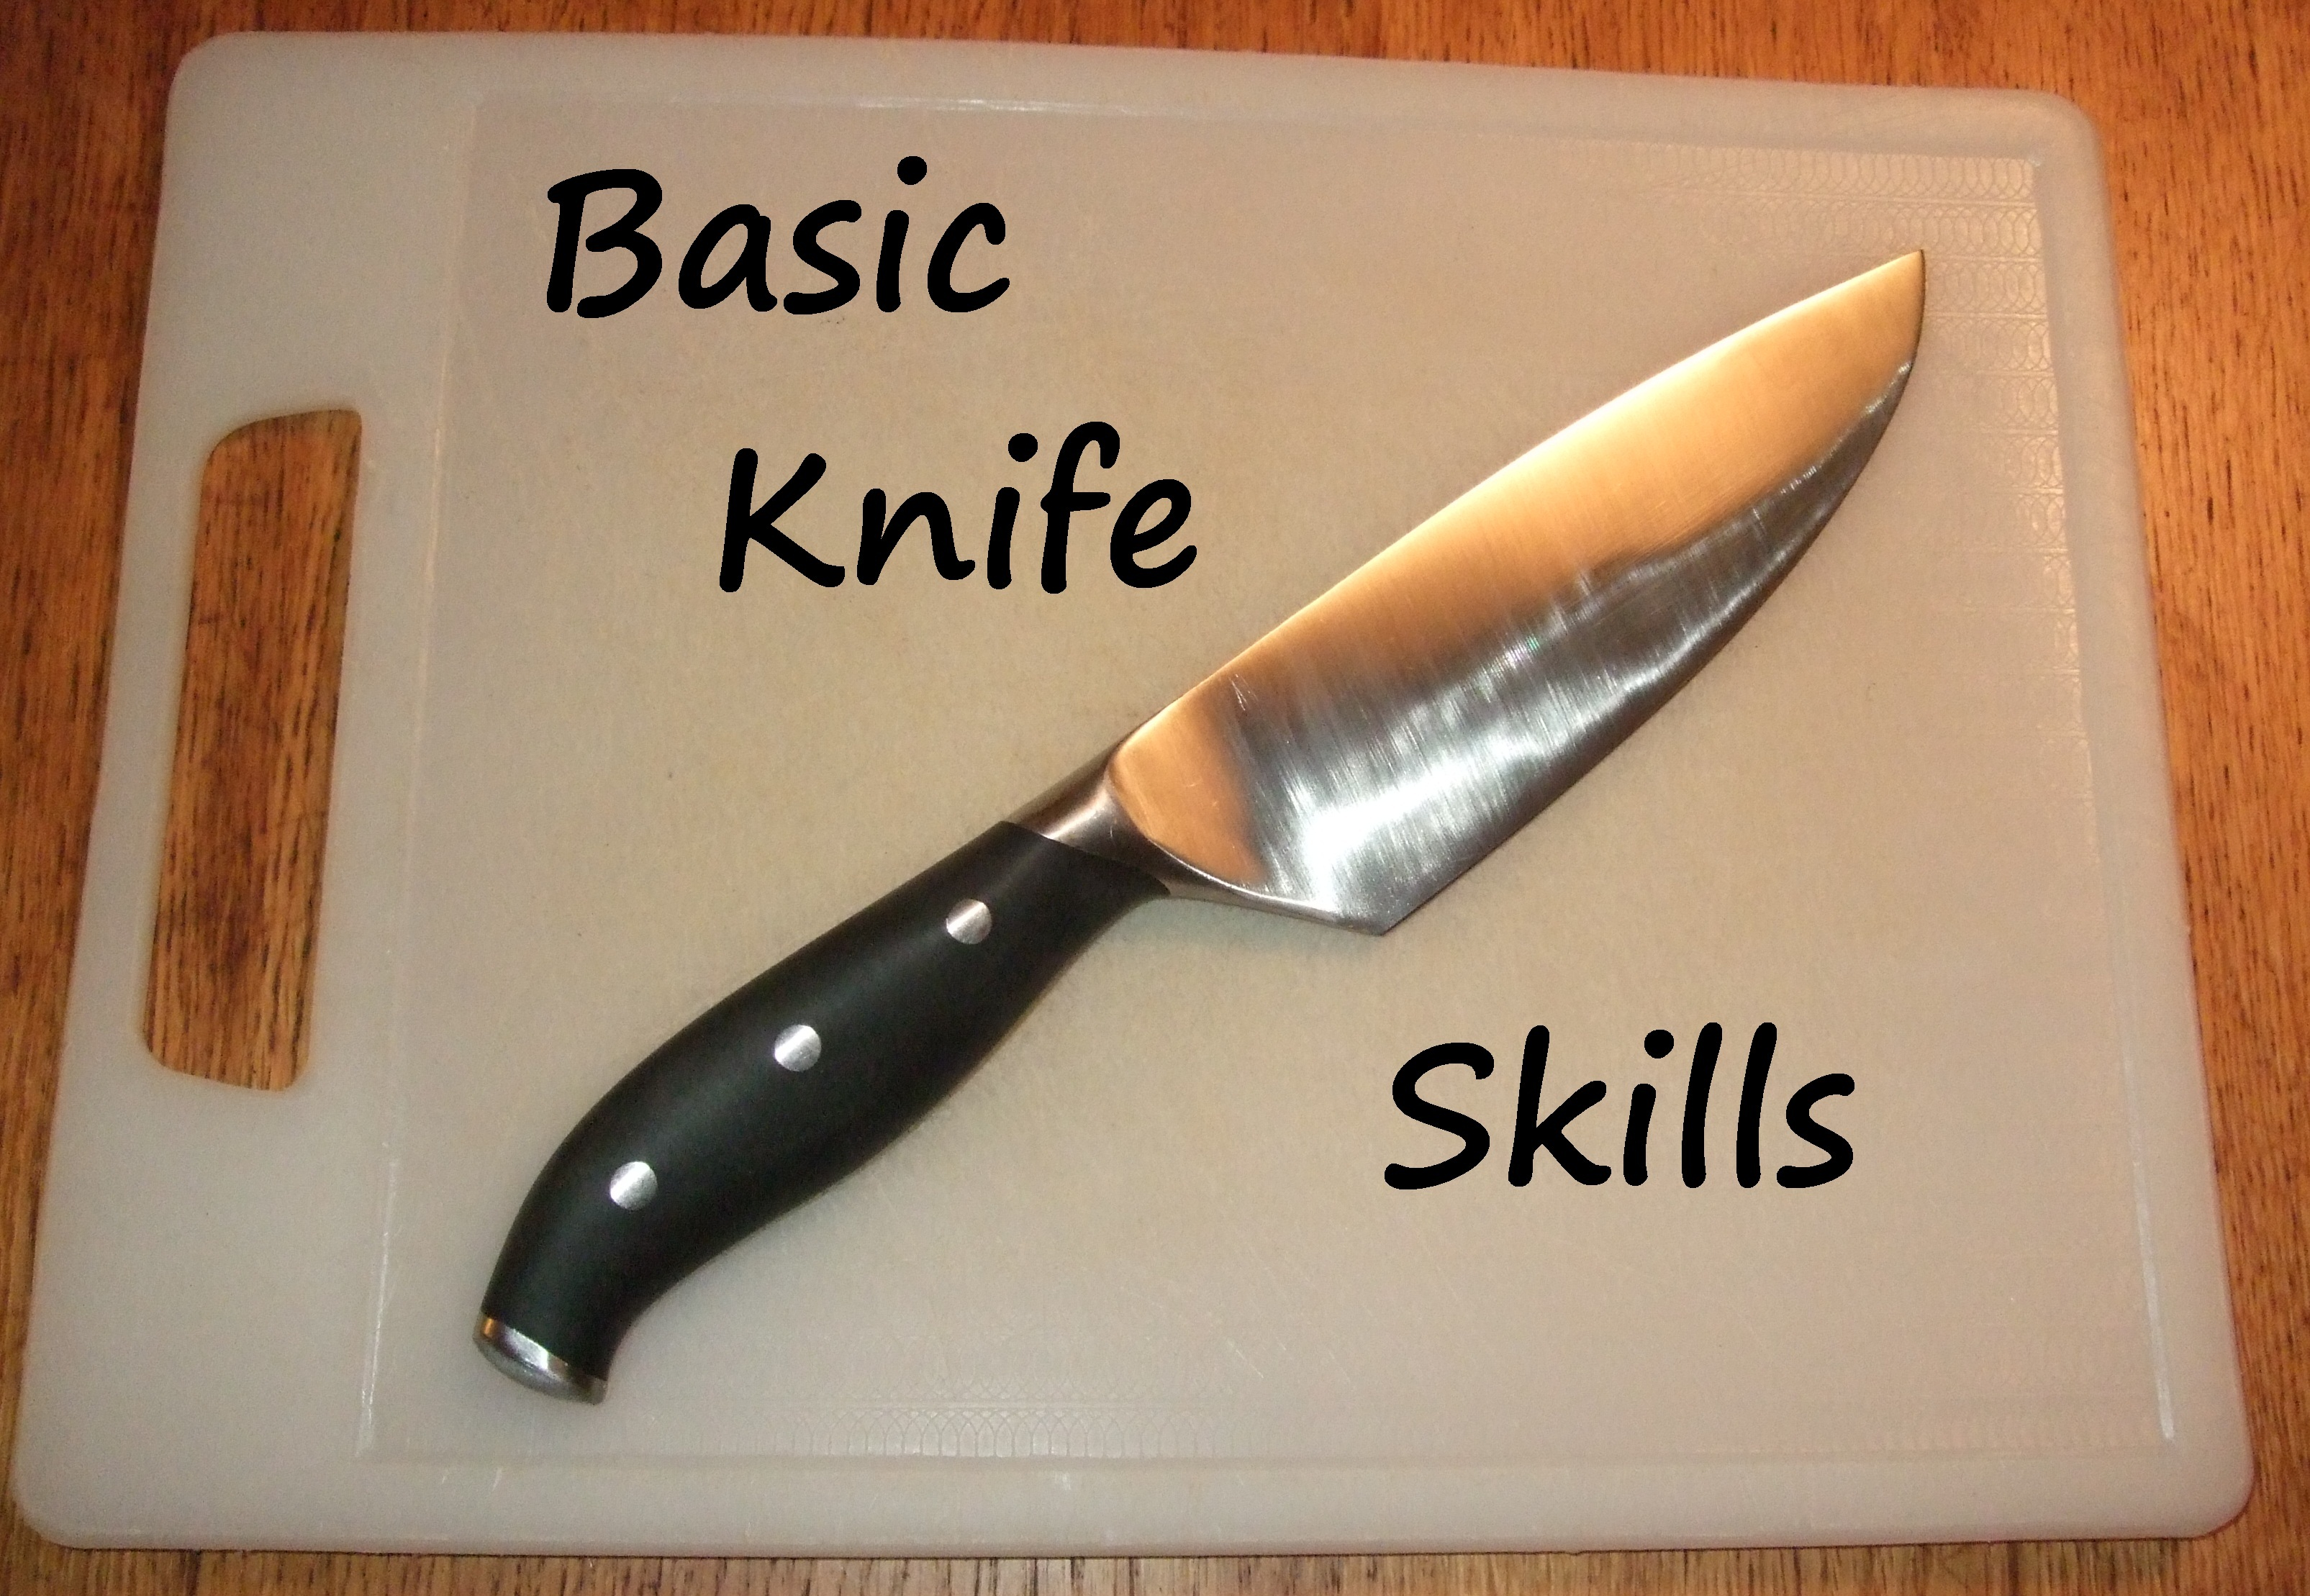 Basic Knife Skills: 5 Steps (with Pictures)